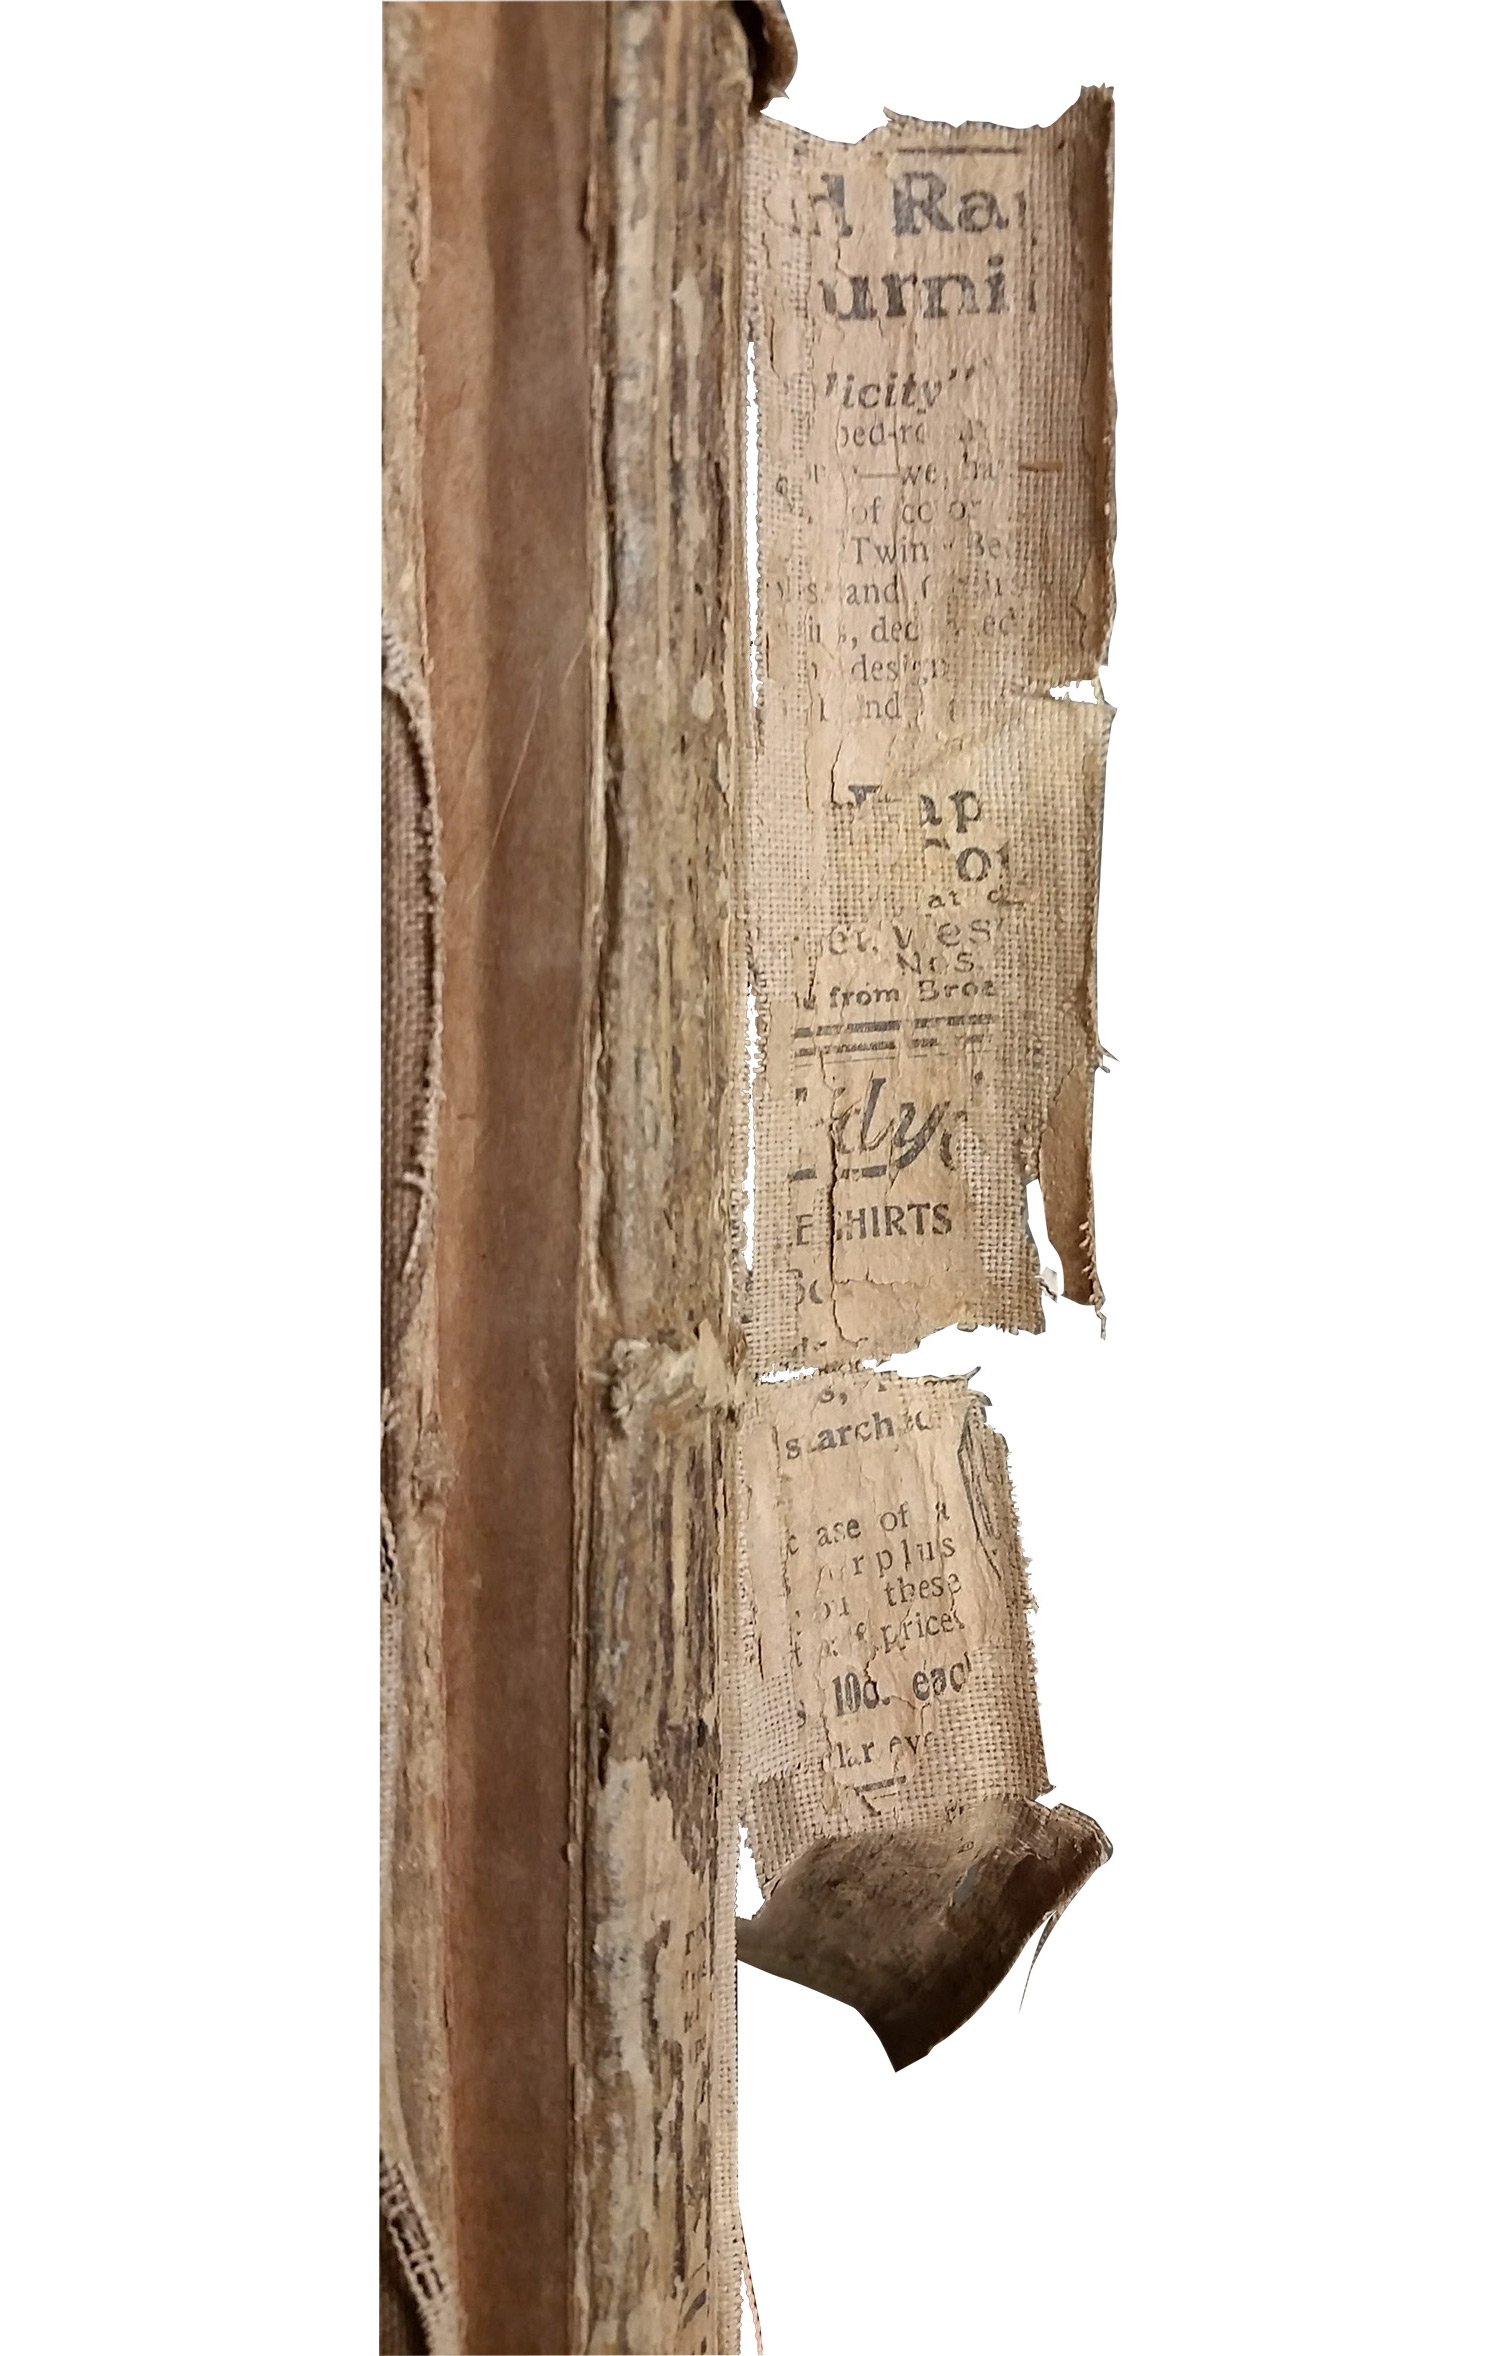 scan of the fragile and decayed binding of the book, some text visible but unreadable